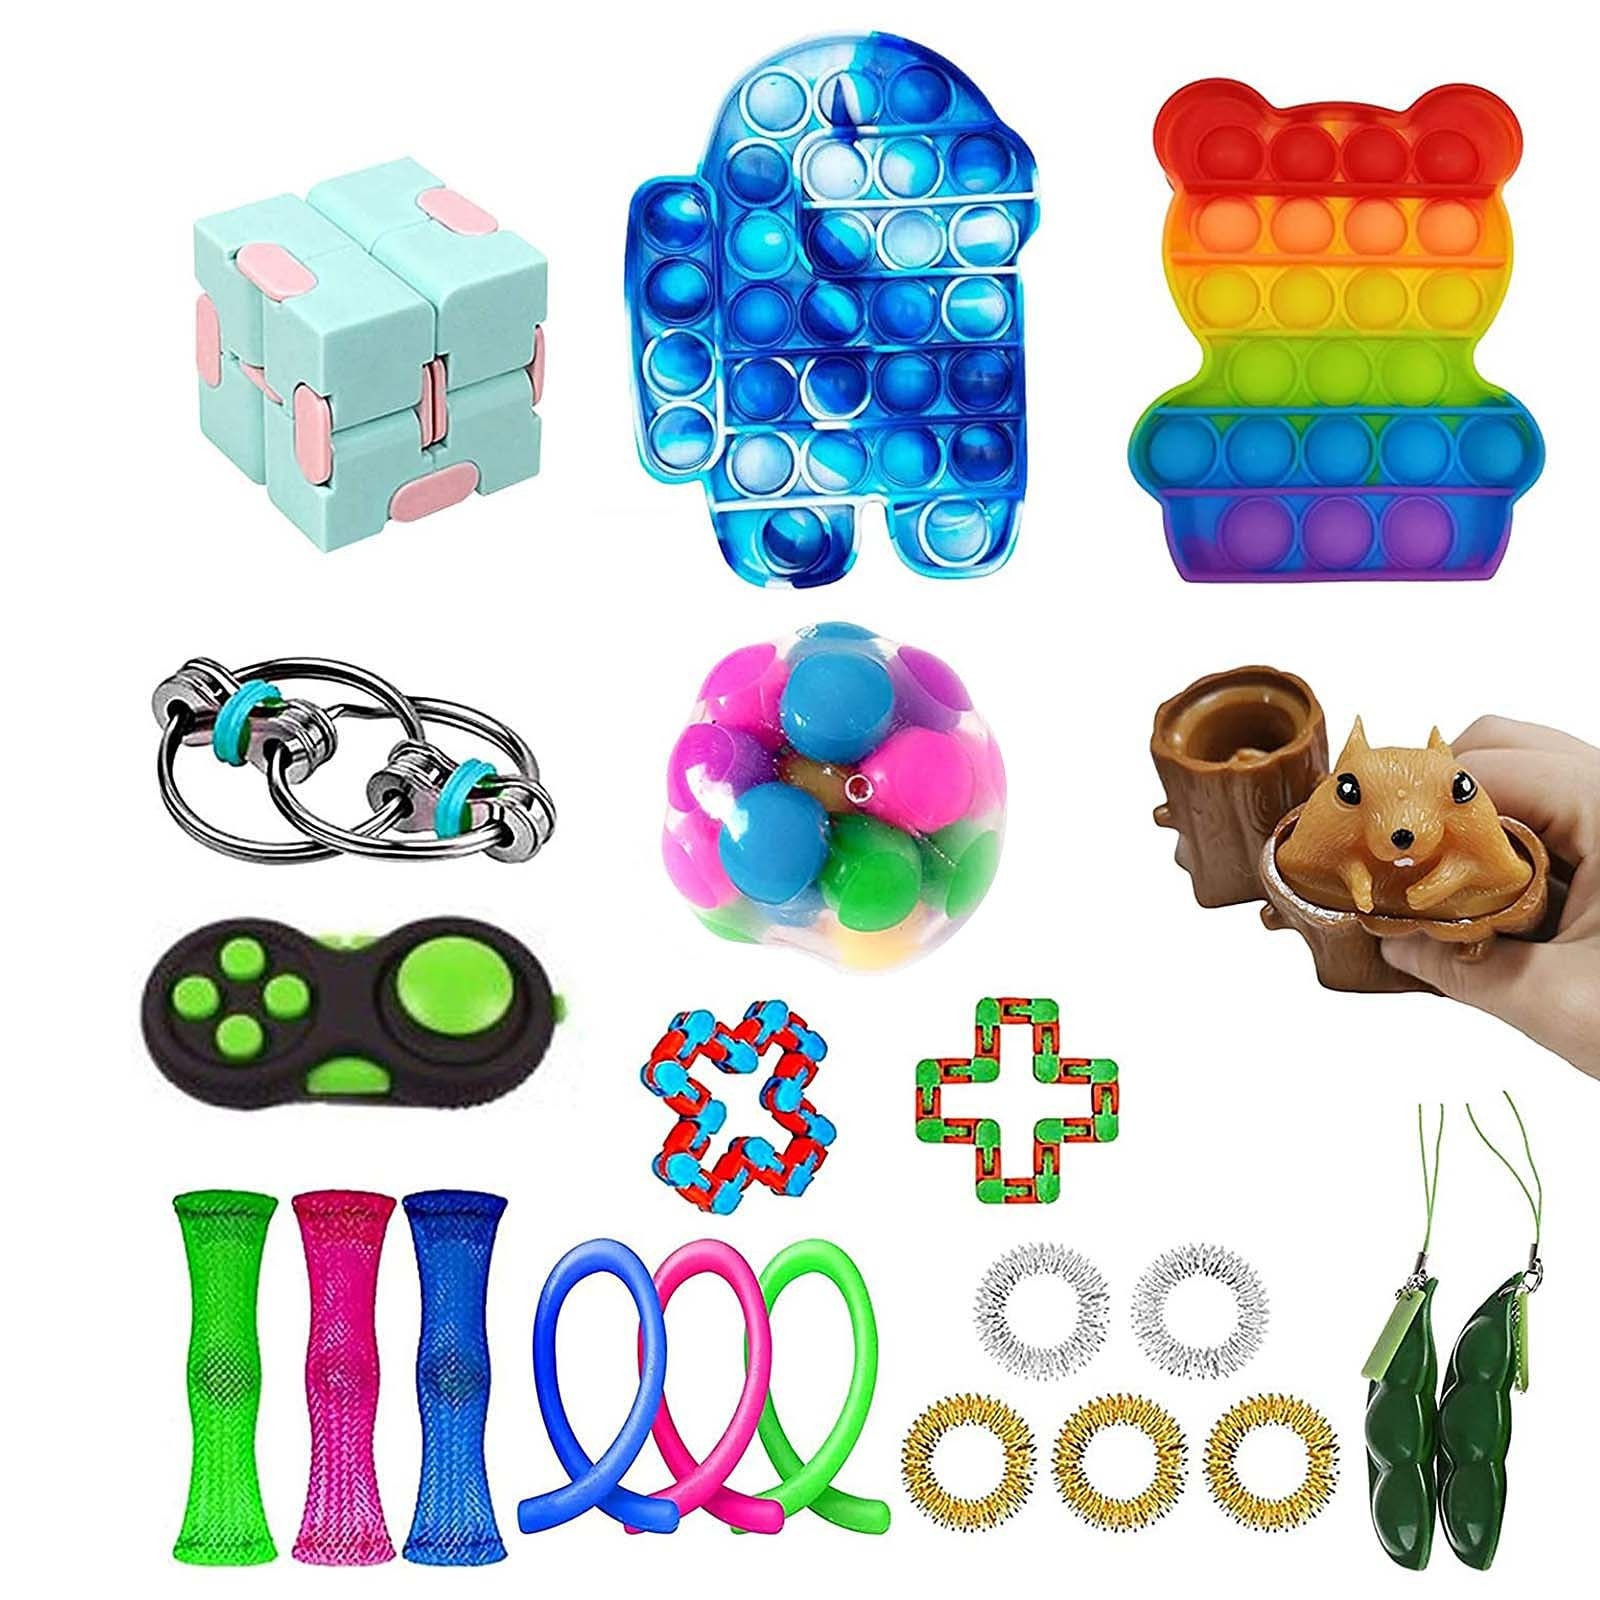 29/30/31 Pack Fidget Sensory Toy Set Stress Relief Toys Autism Anxiety Relief Stress Fidget Sensory Toy For Kids Adults Gifts